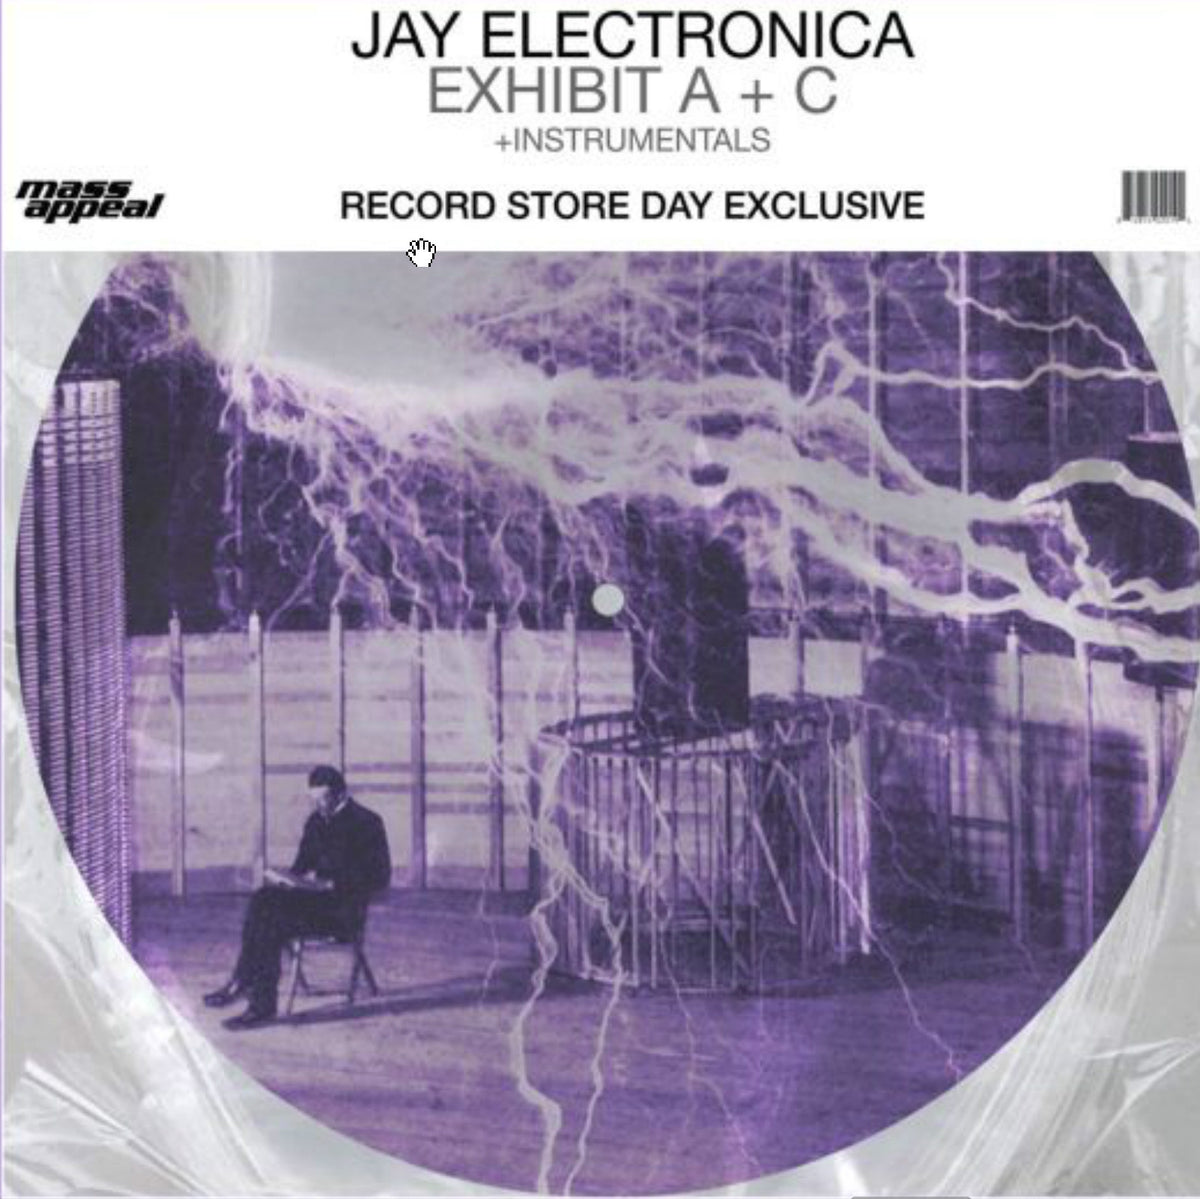 "Jay Electronica: Exhibit A+C Instrumentals (Pic Disc) Vinyl 12"" (Record Store Day)"